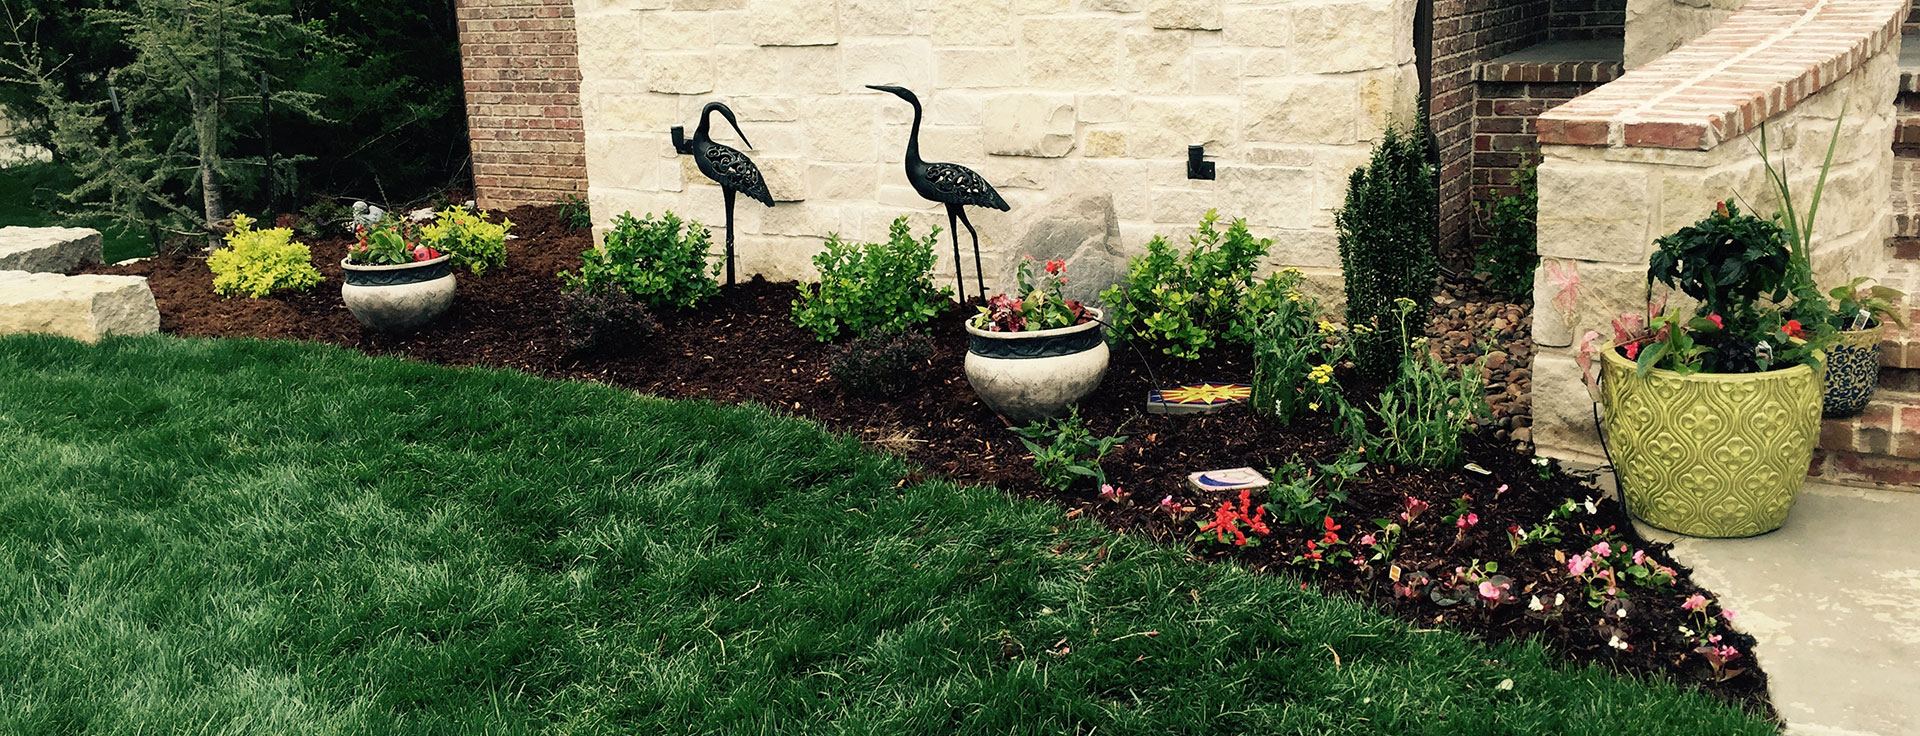 Landscape design daniels lawn and landscaping services for Lawn and garden maintenance